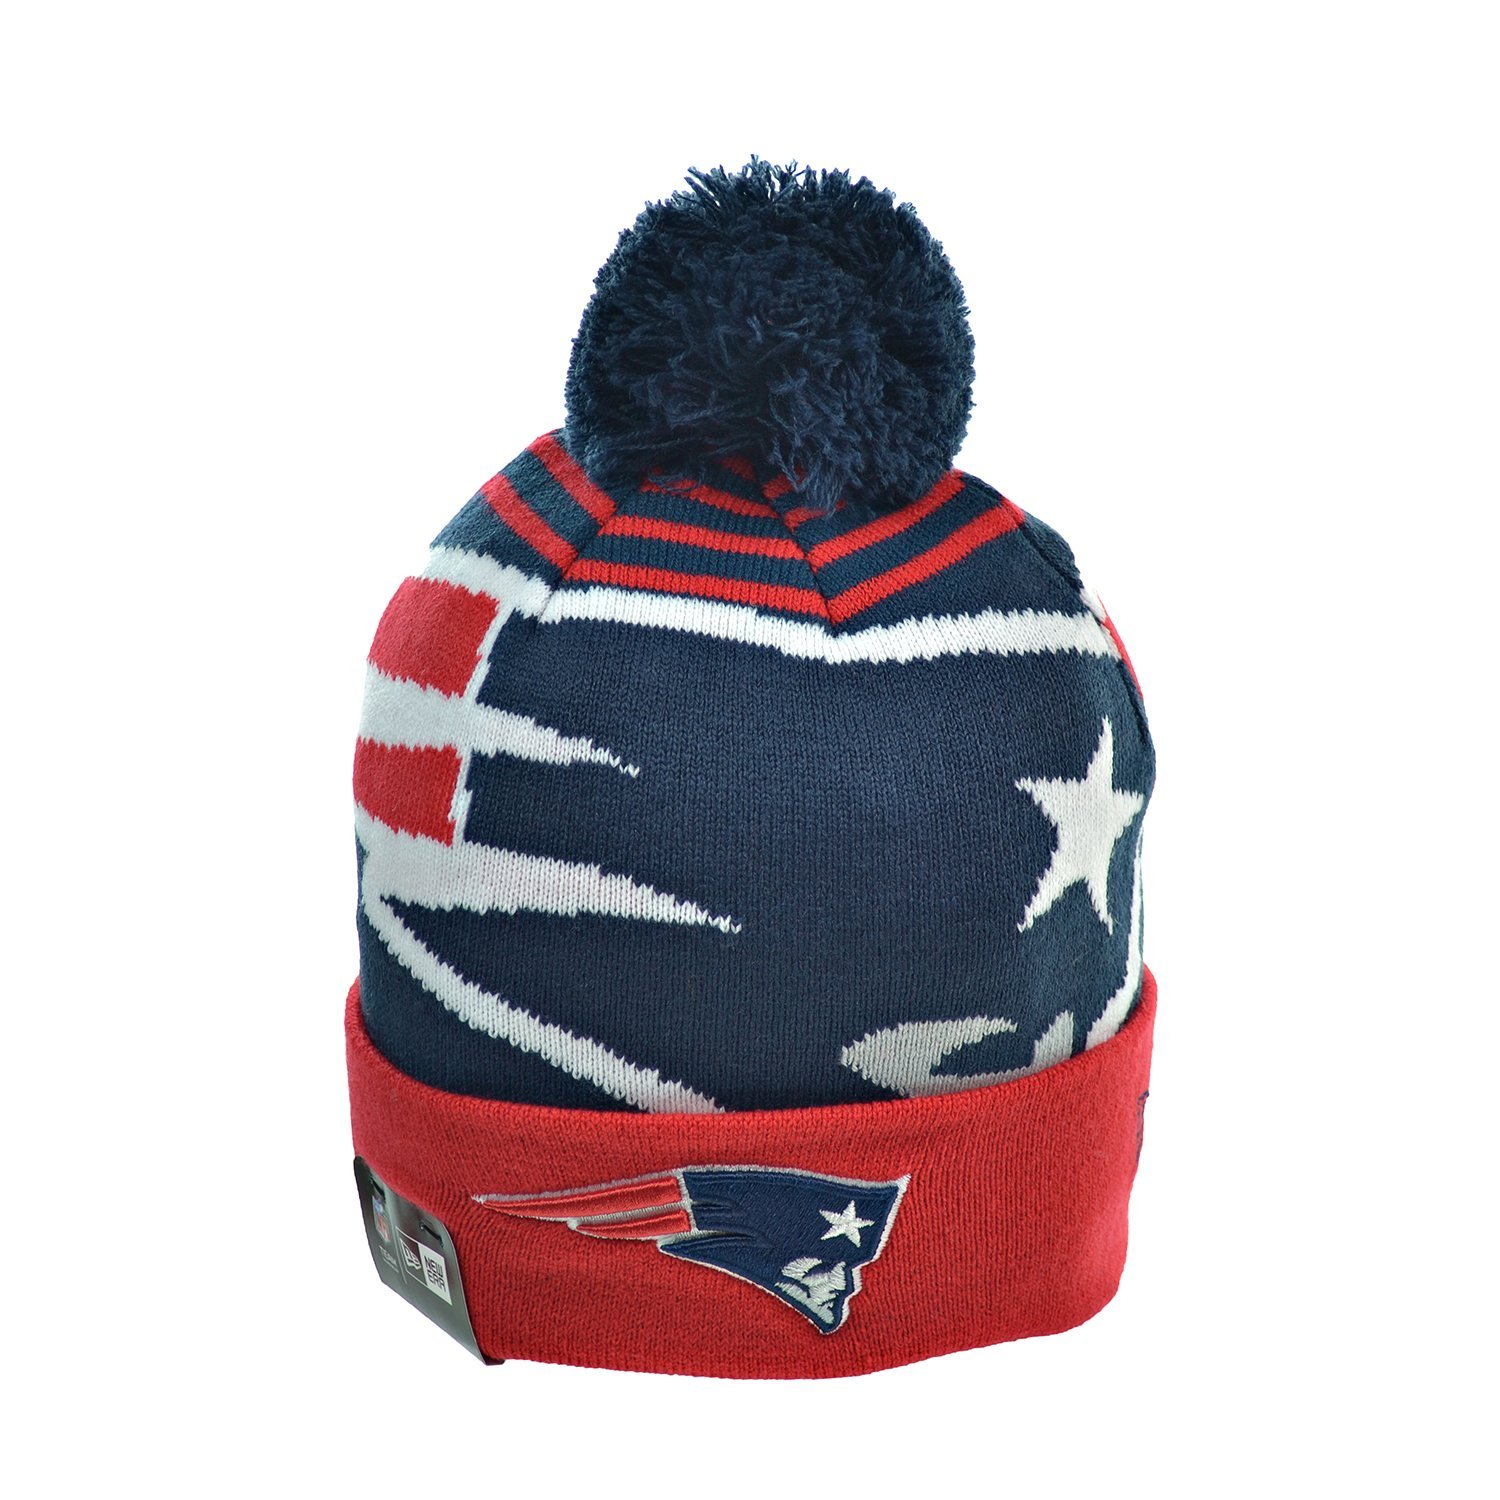 69919e250b38d Get Quotations · New Era New England Patriots NFL Men s Winter Knit Pom  Beanie Red Blue White